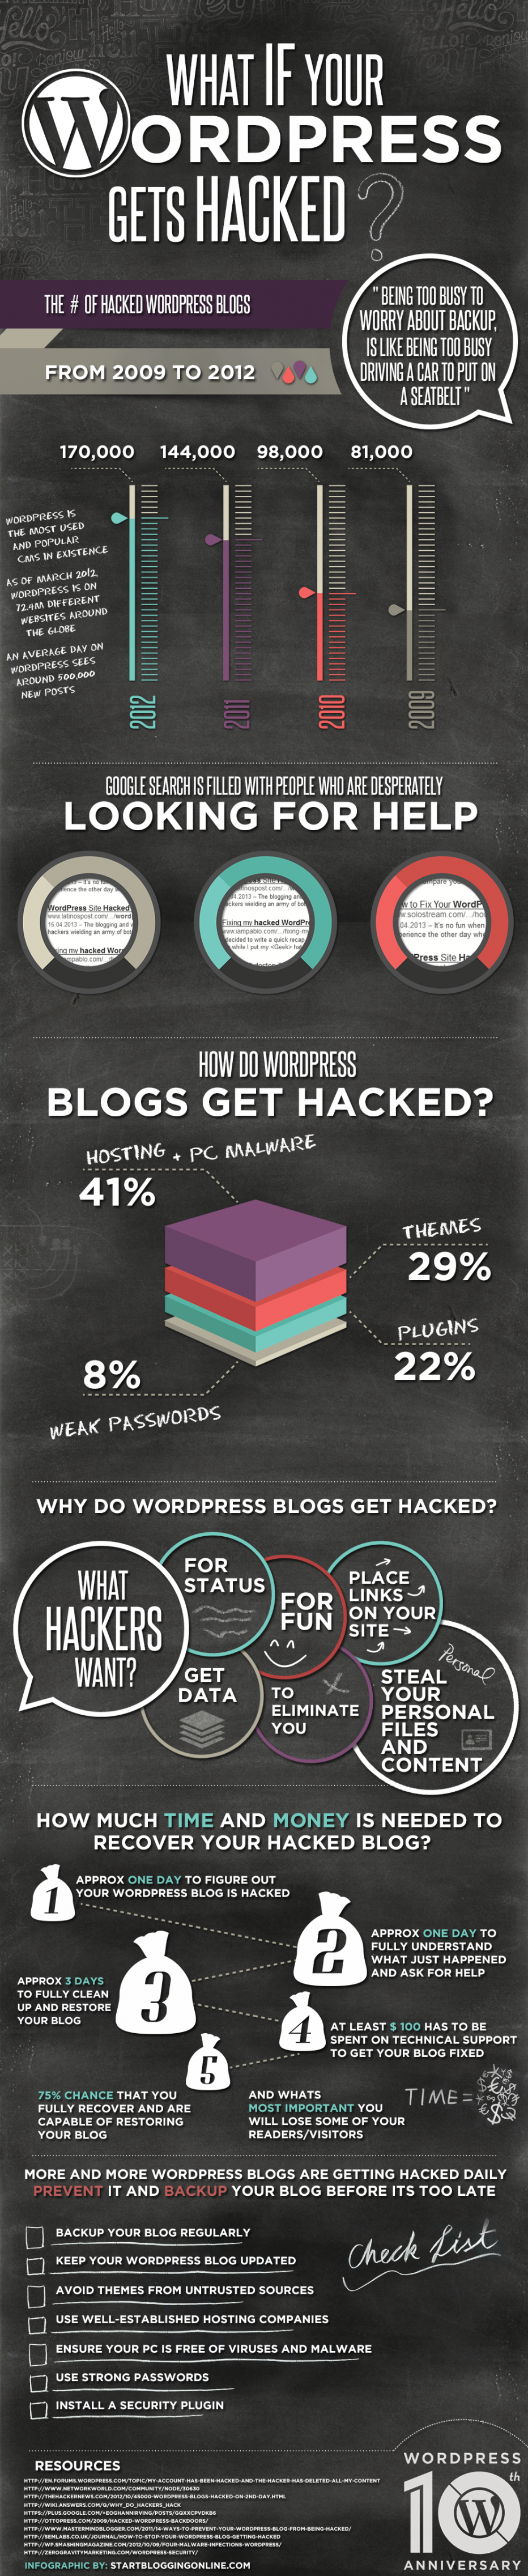 What If Your WordPress Gets Hacked?